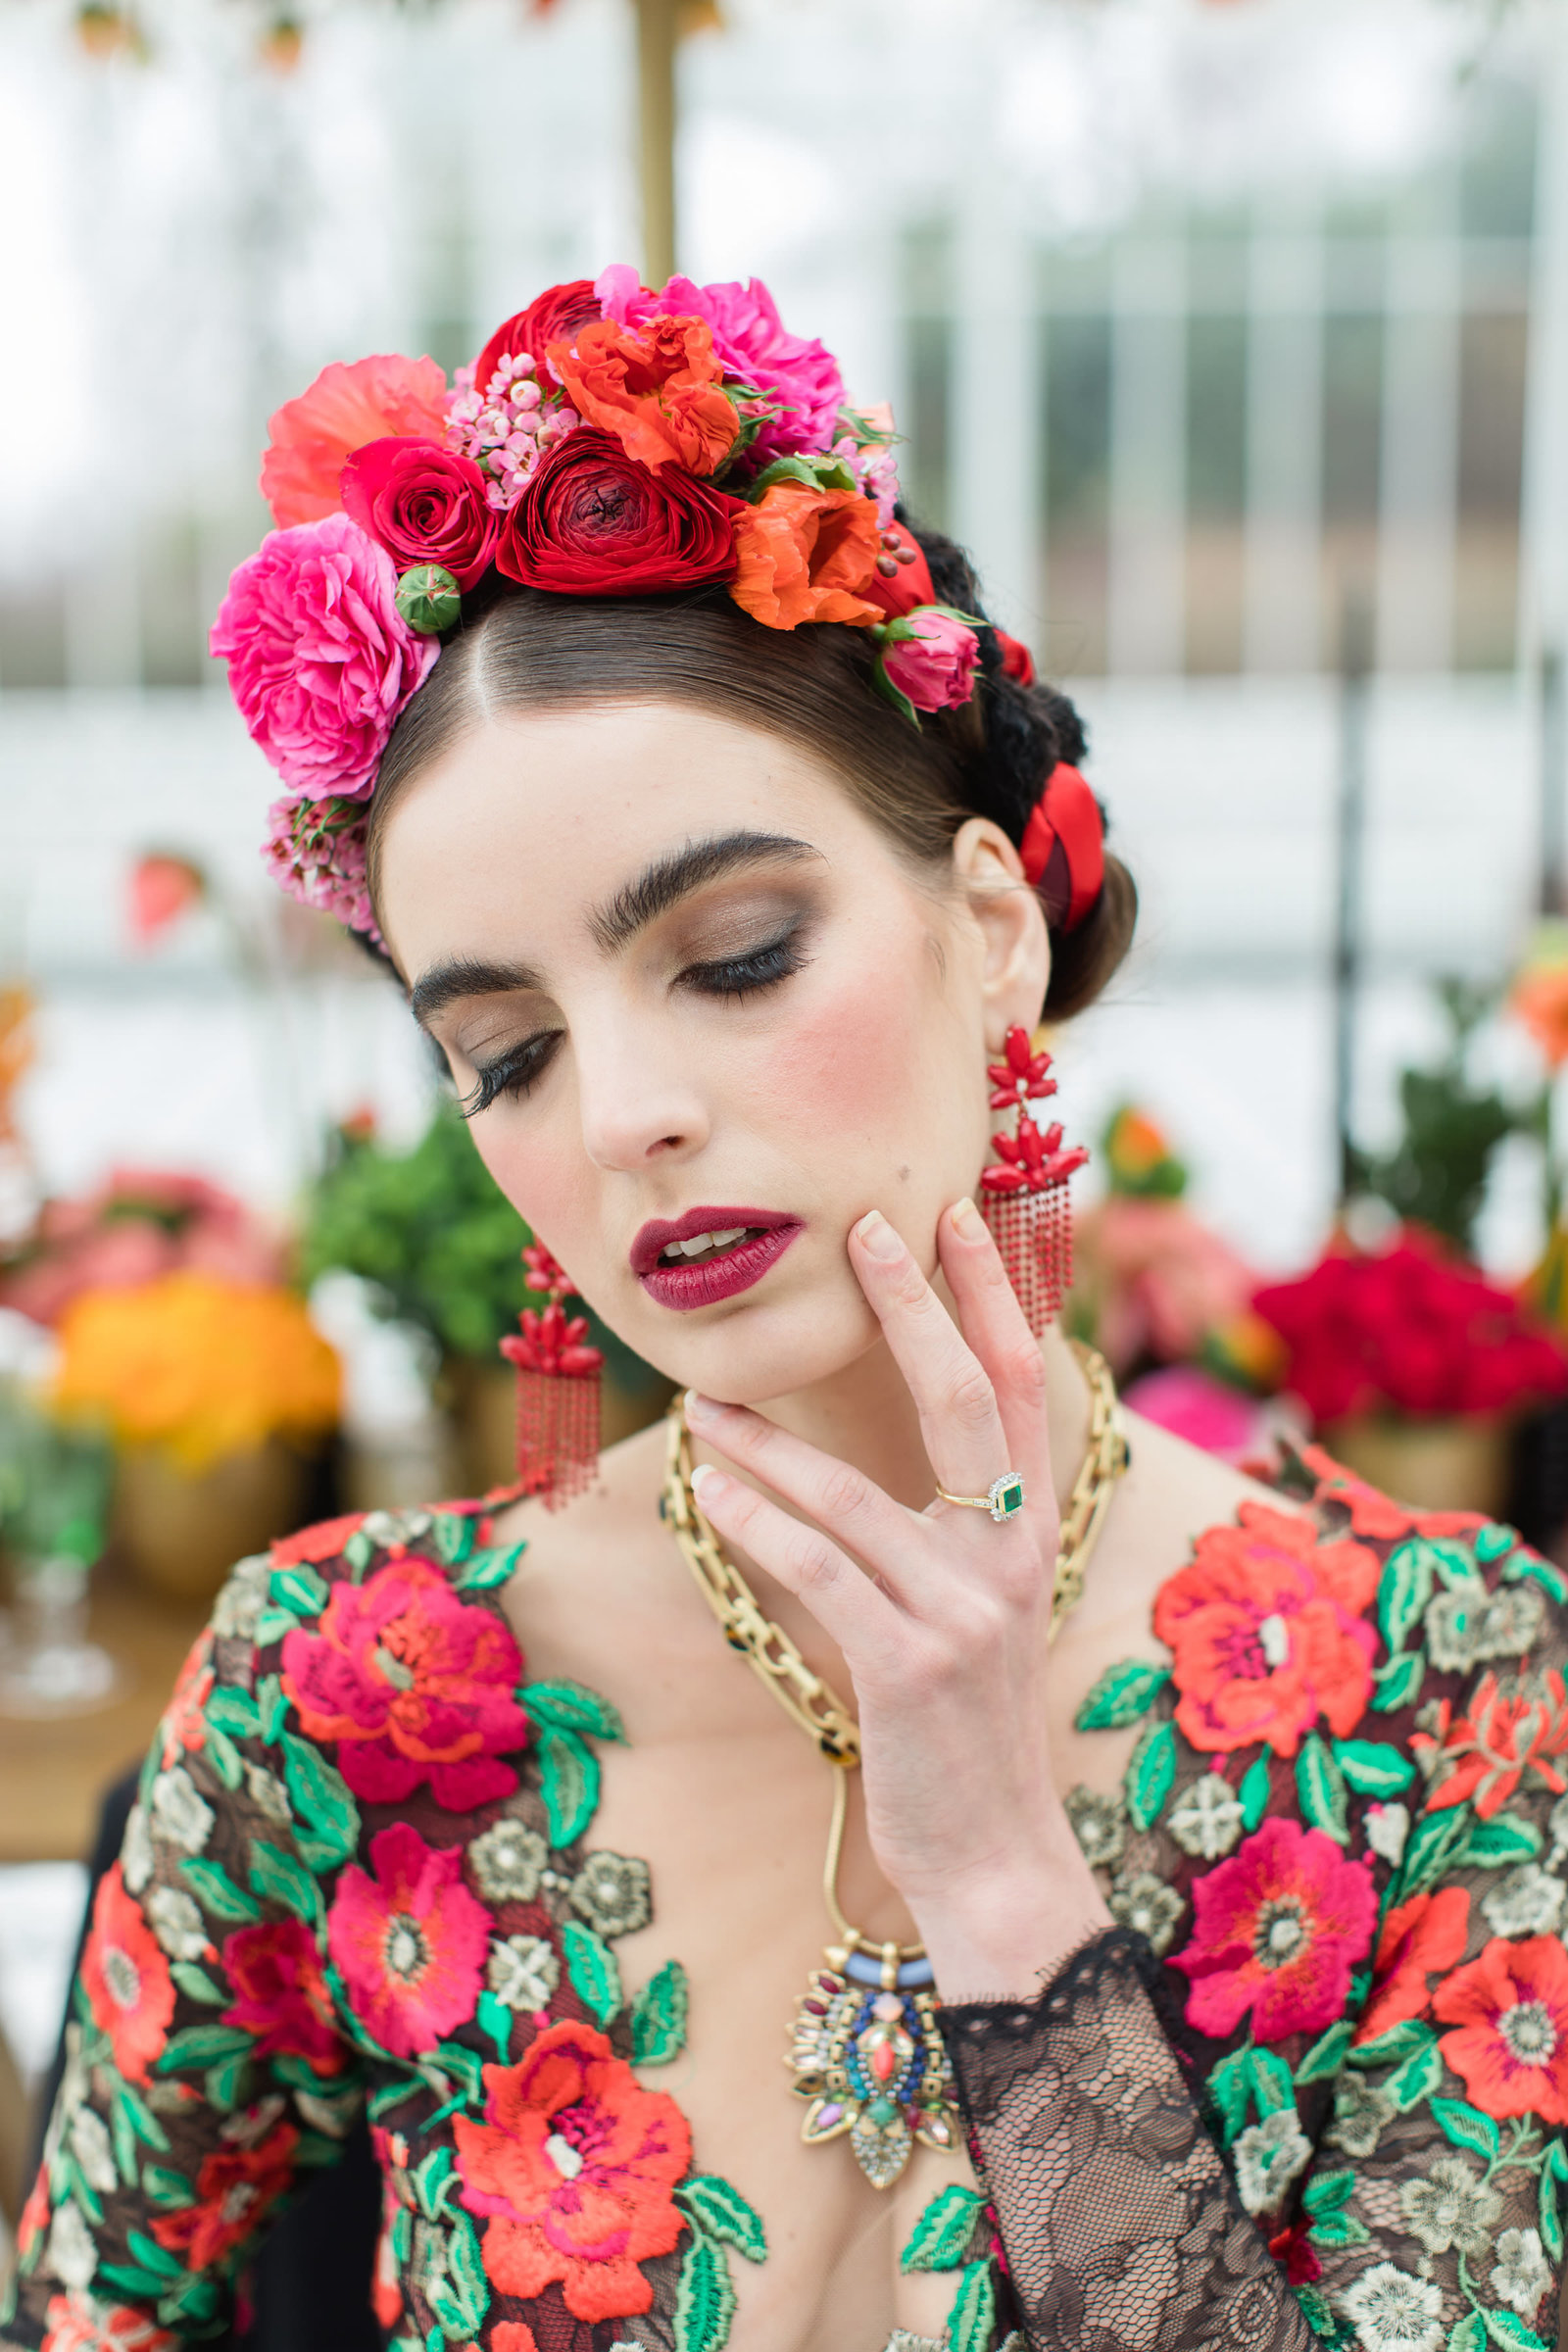 Frida-Kahlo-embroidered-floral-dress-JoanneFlemingDesign-RobertaFacchiniPhoto (24)